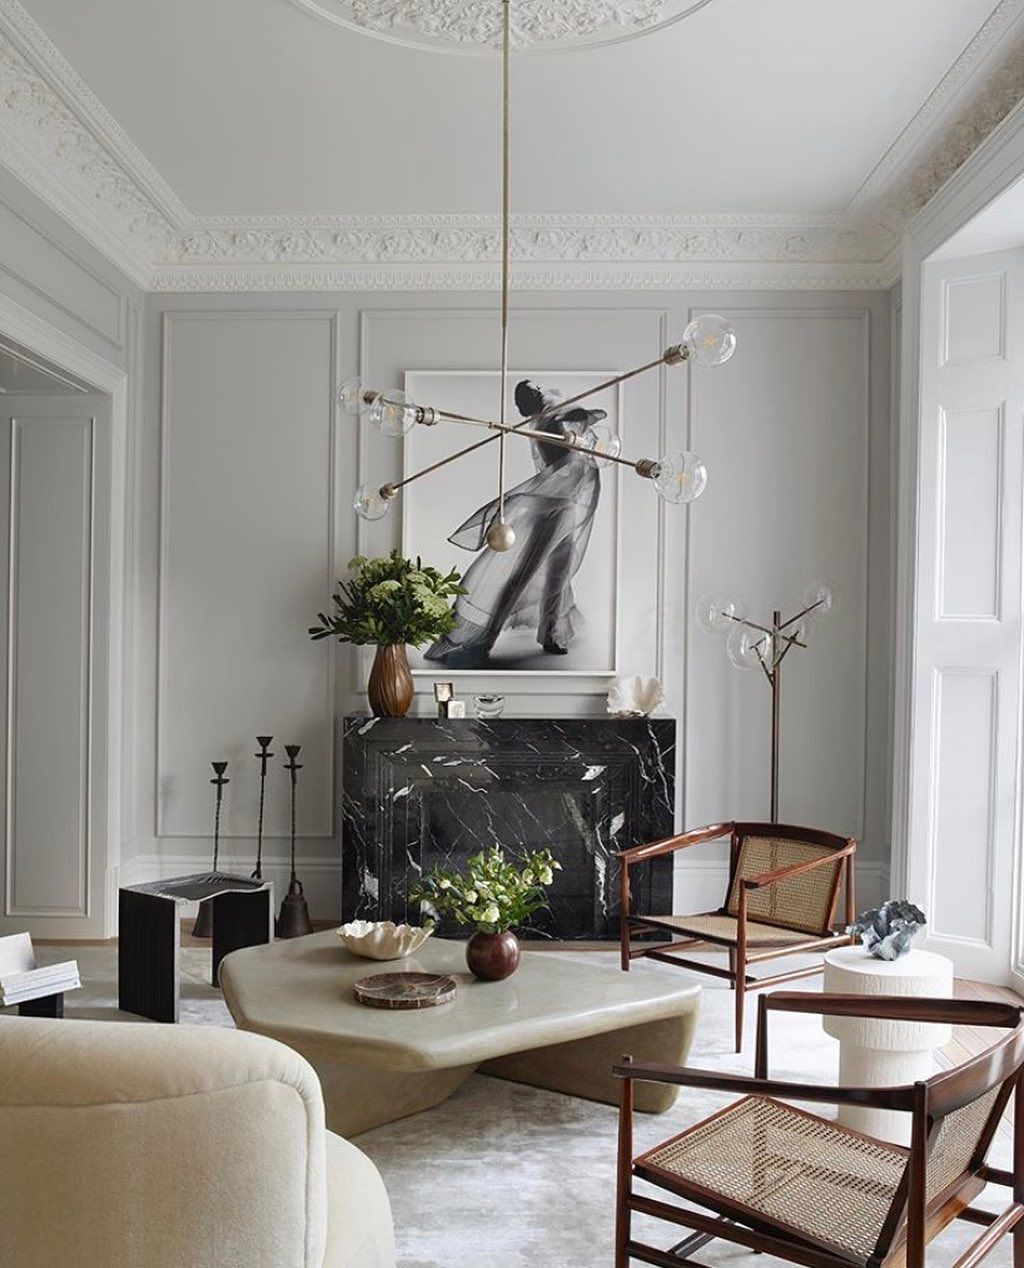 Marble Wood Fabrics All Our Favorite Materials And Textures In One Living Room This Is A Gr Contemporary Living Room Design Decor Beautiful Living Rooms